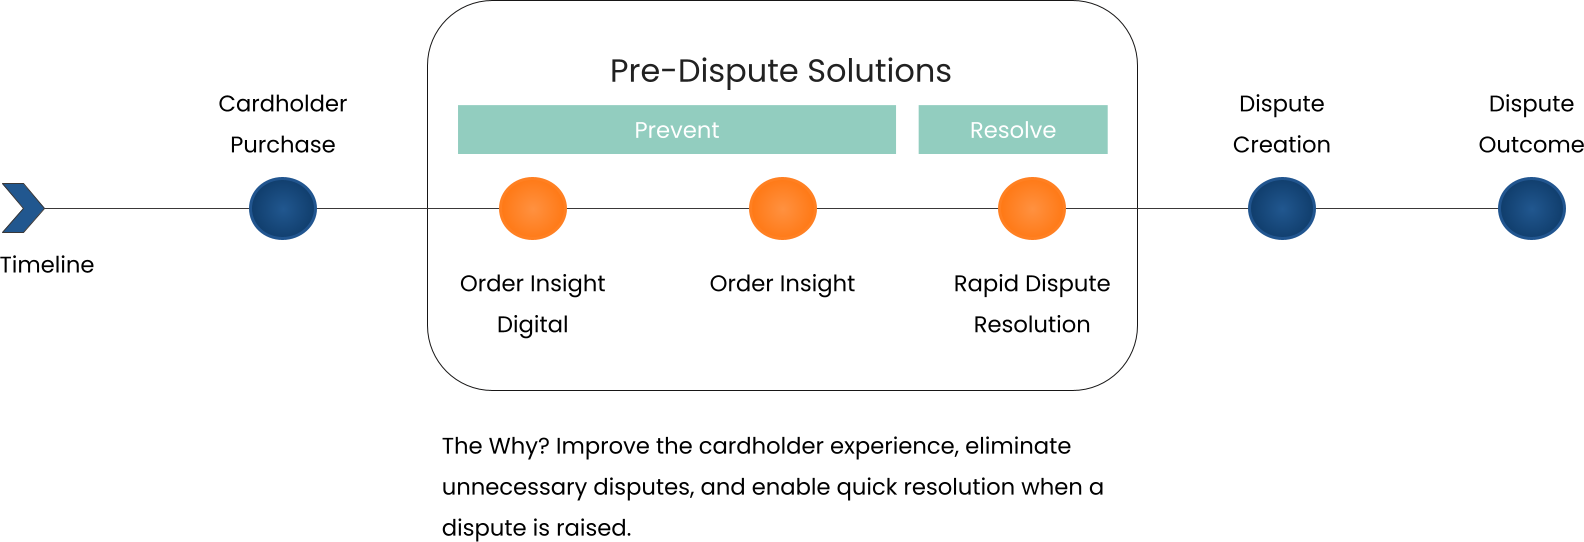 Process timeline enhanced with predispute solutions